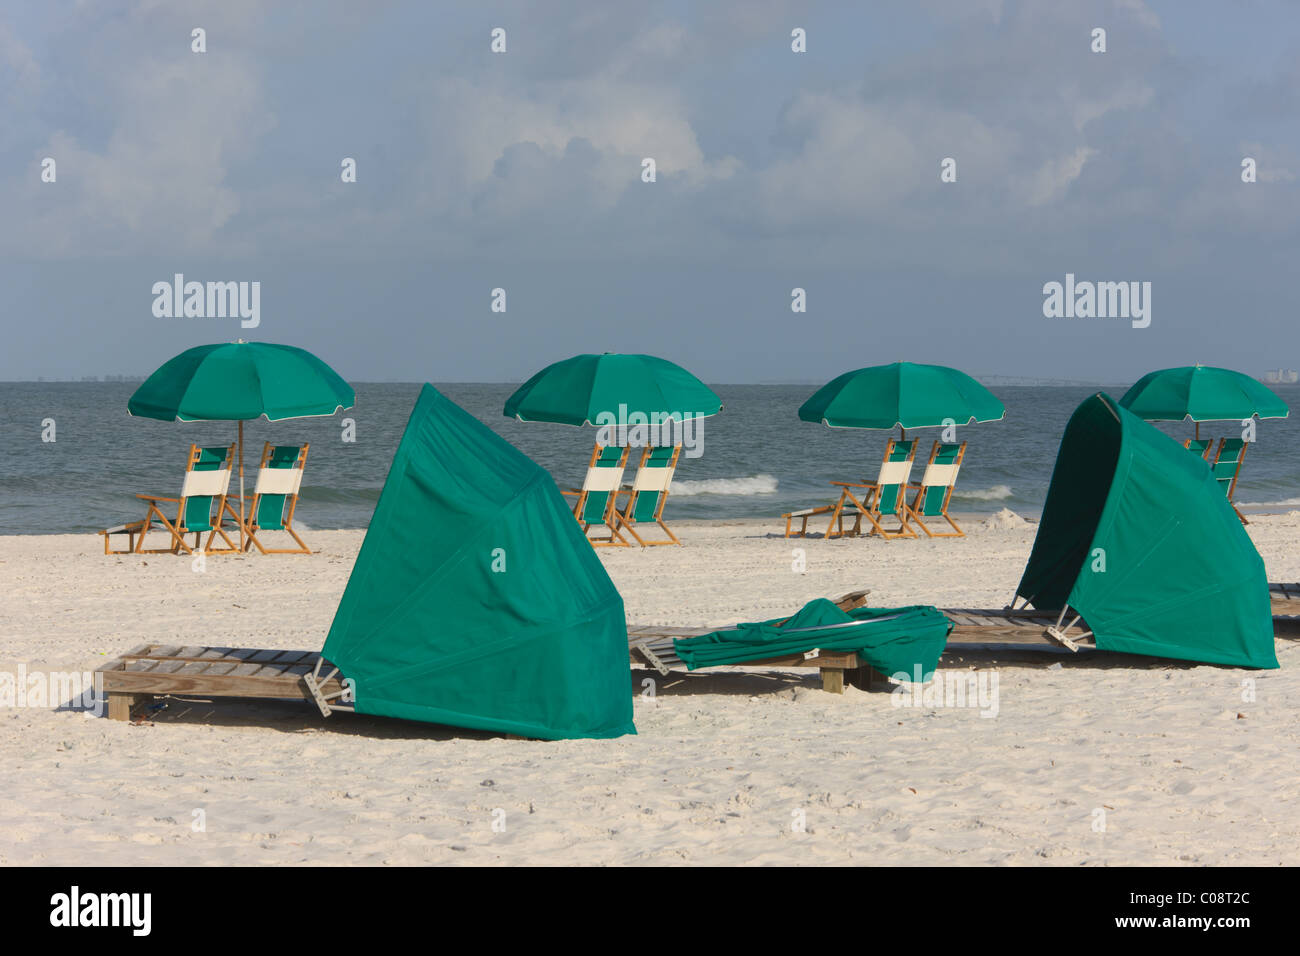 Vacant beach chairs and cabana loungers on a sunny day at a beach. - Stock Image